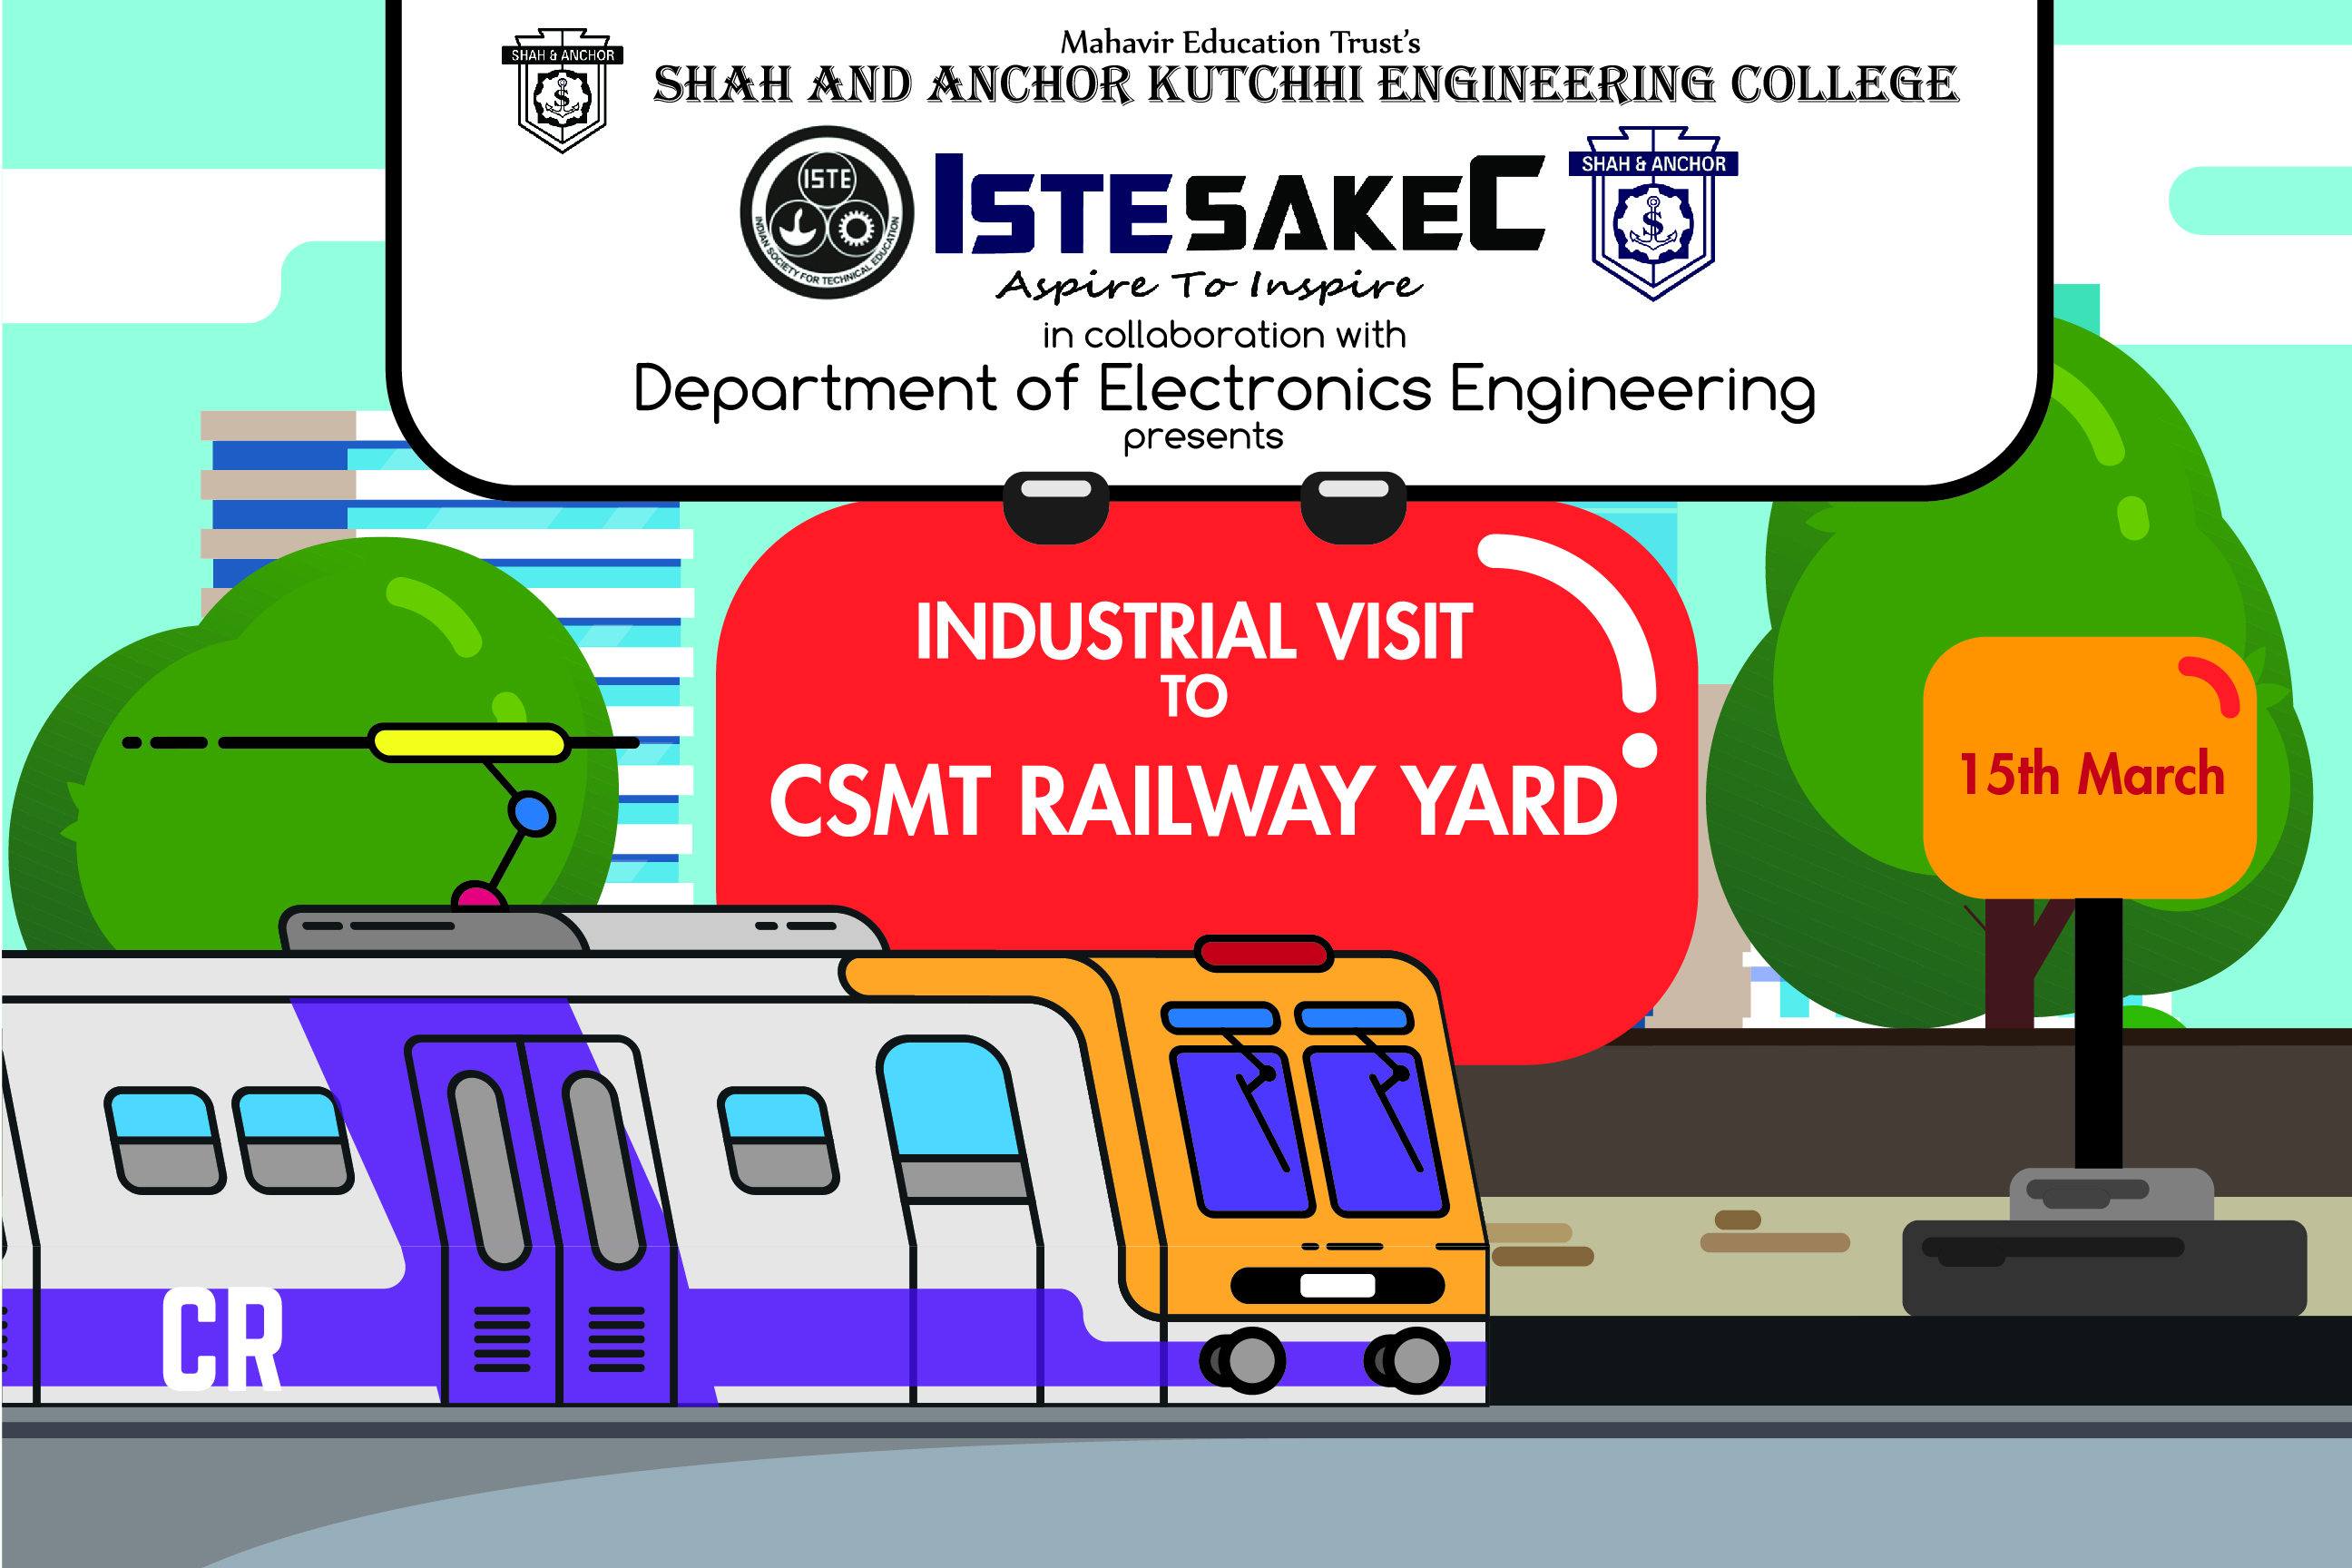 Industrial Visit to CSMT Railway Yard